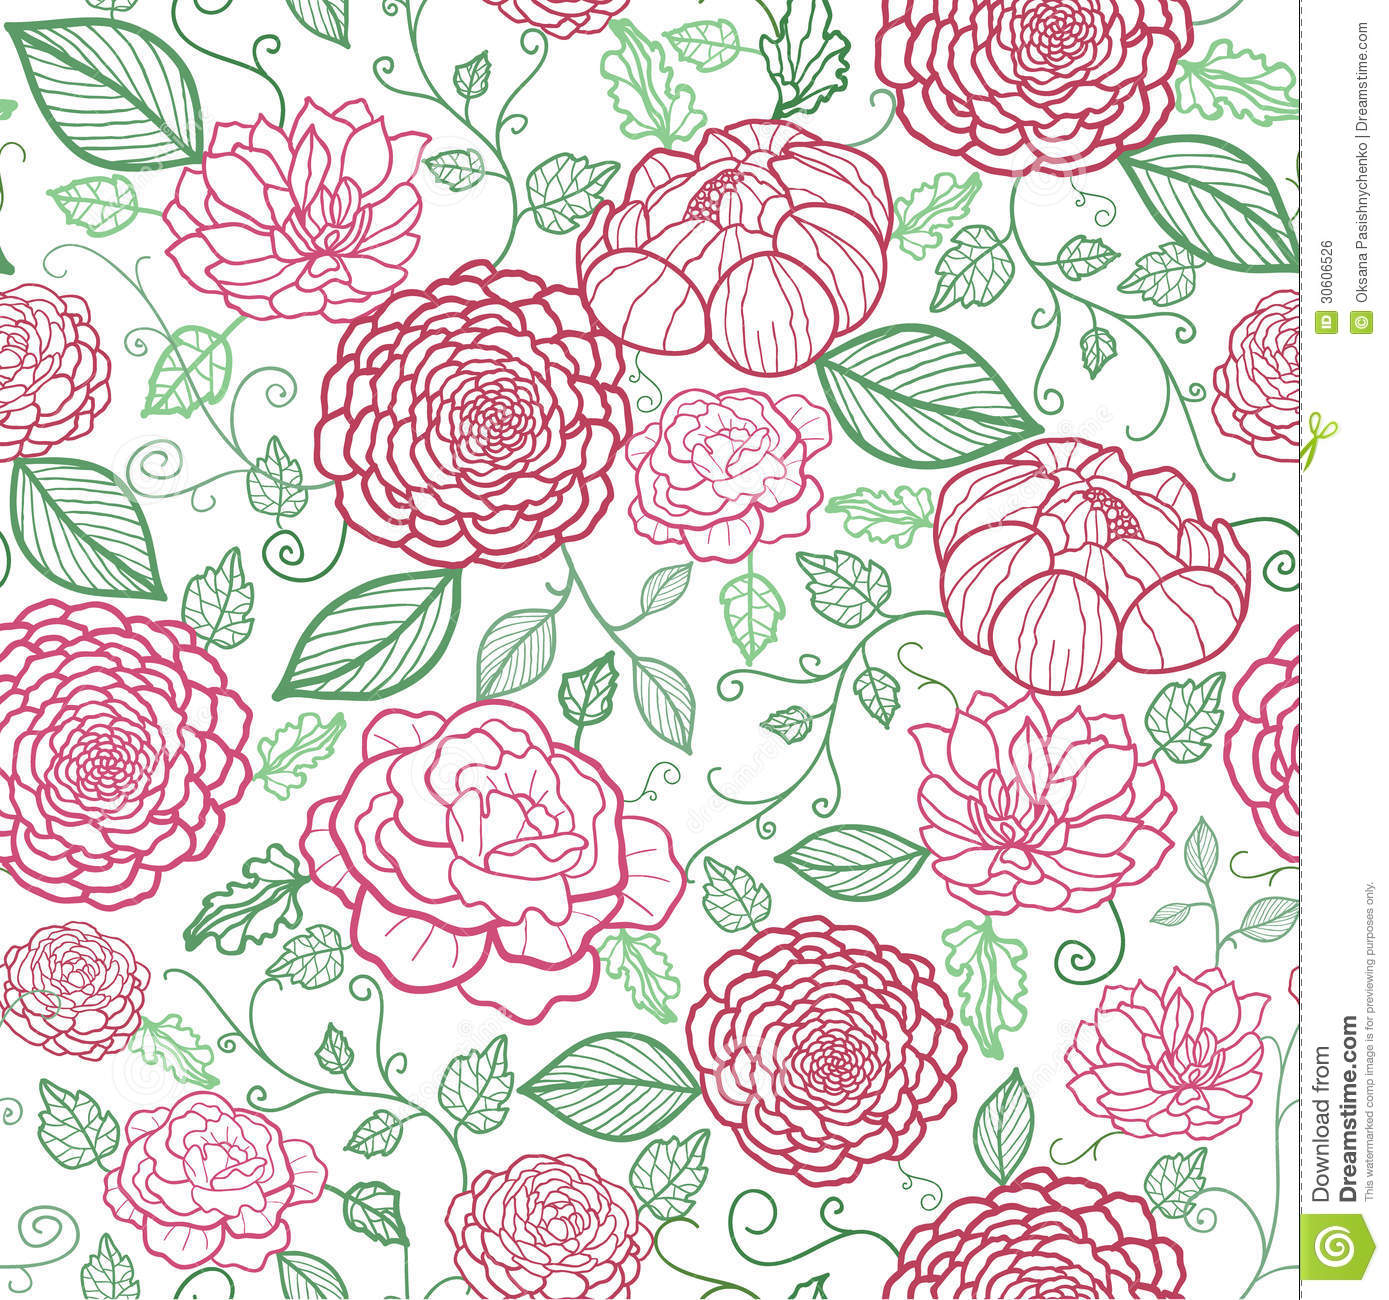 Line Art Flowers Vector : Floral line art seamless pattern background stock vector